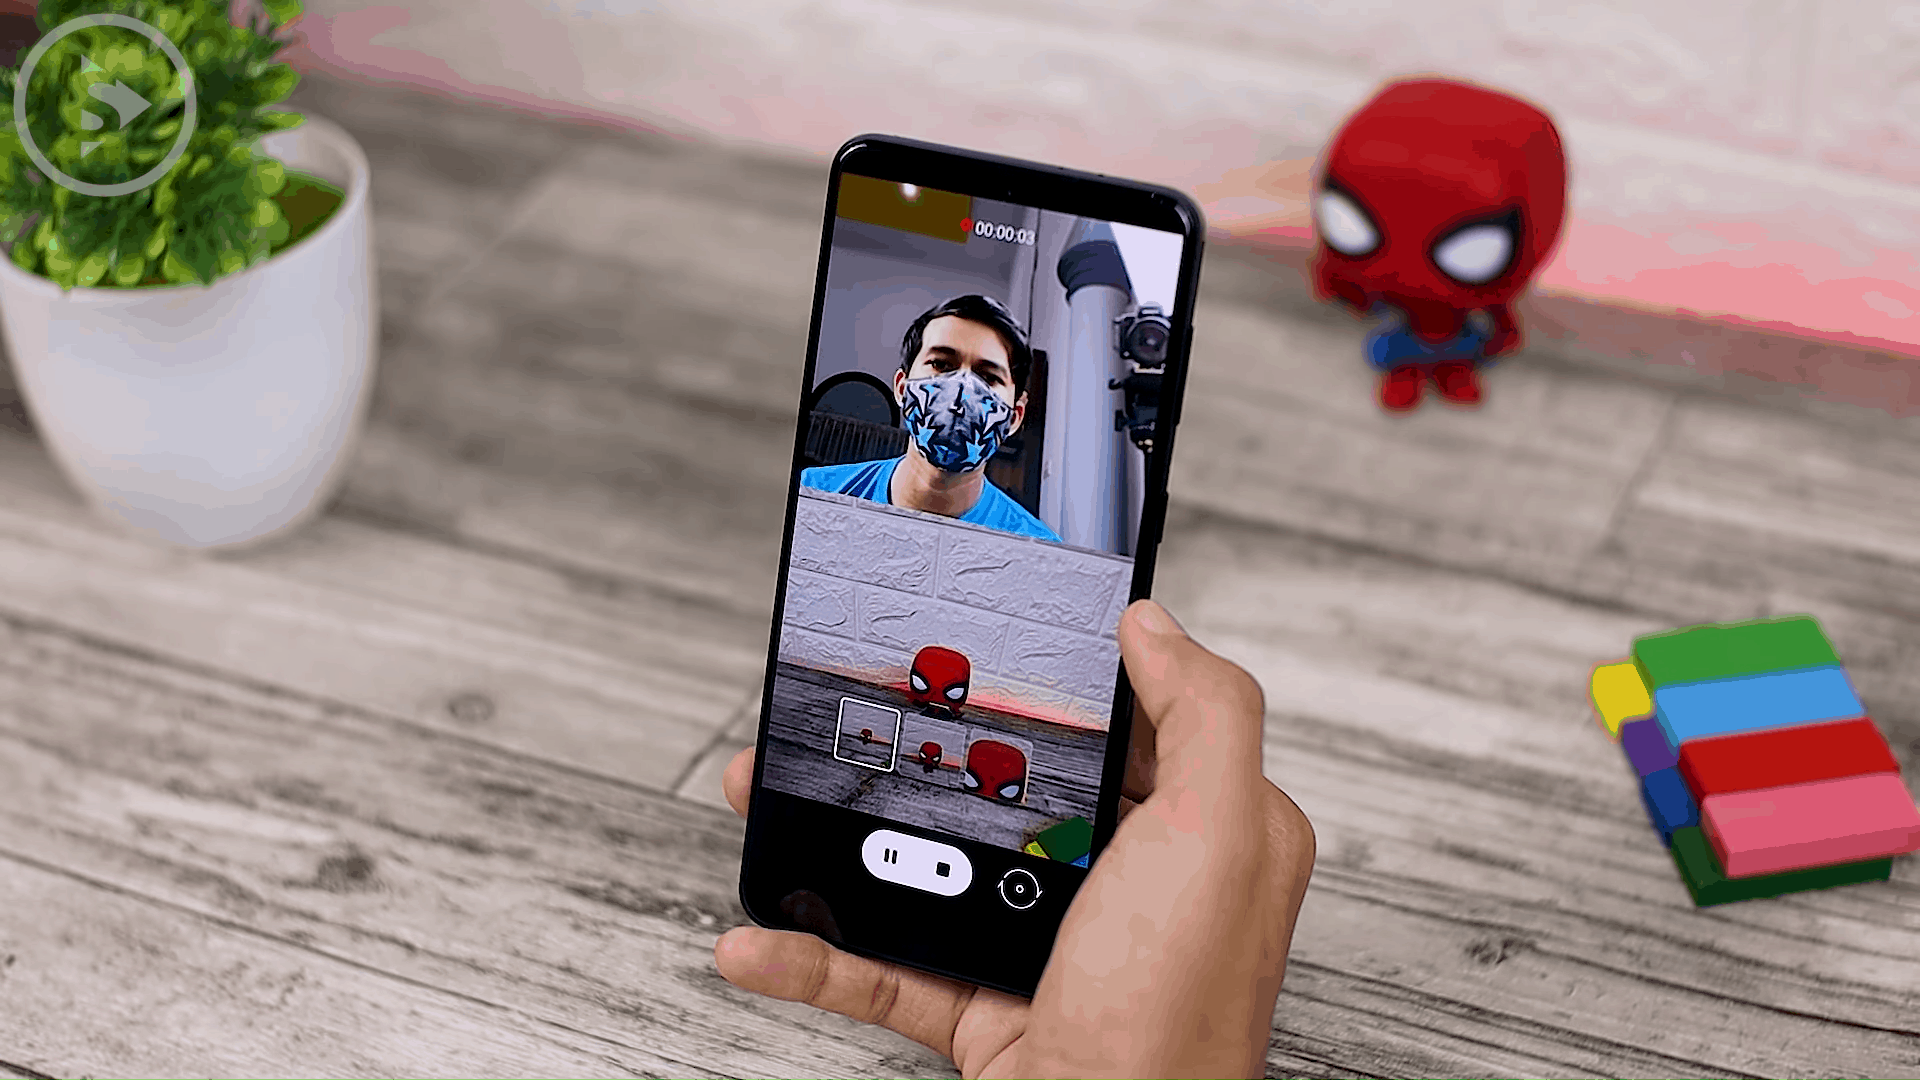 Director's View - Check out the latest One UI 3.1 features on the Samsung S21 + that are not yet available on One UI 3.0 Samsung S20 + (PART 2)